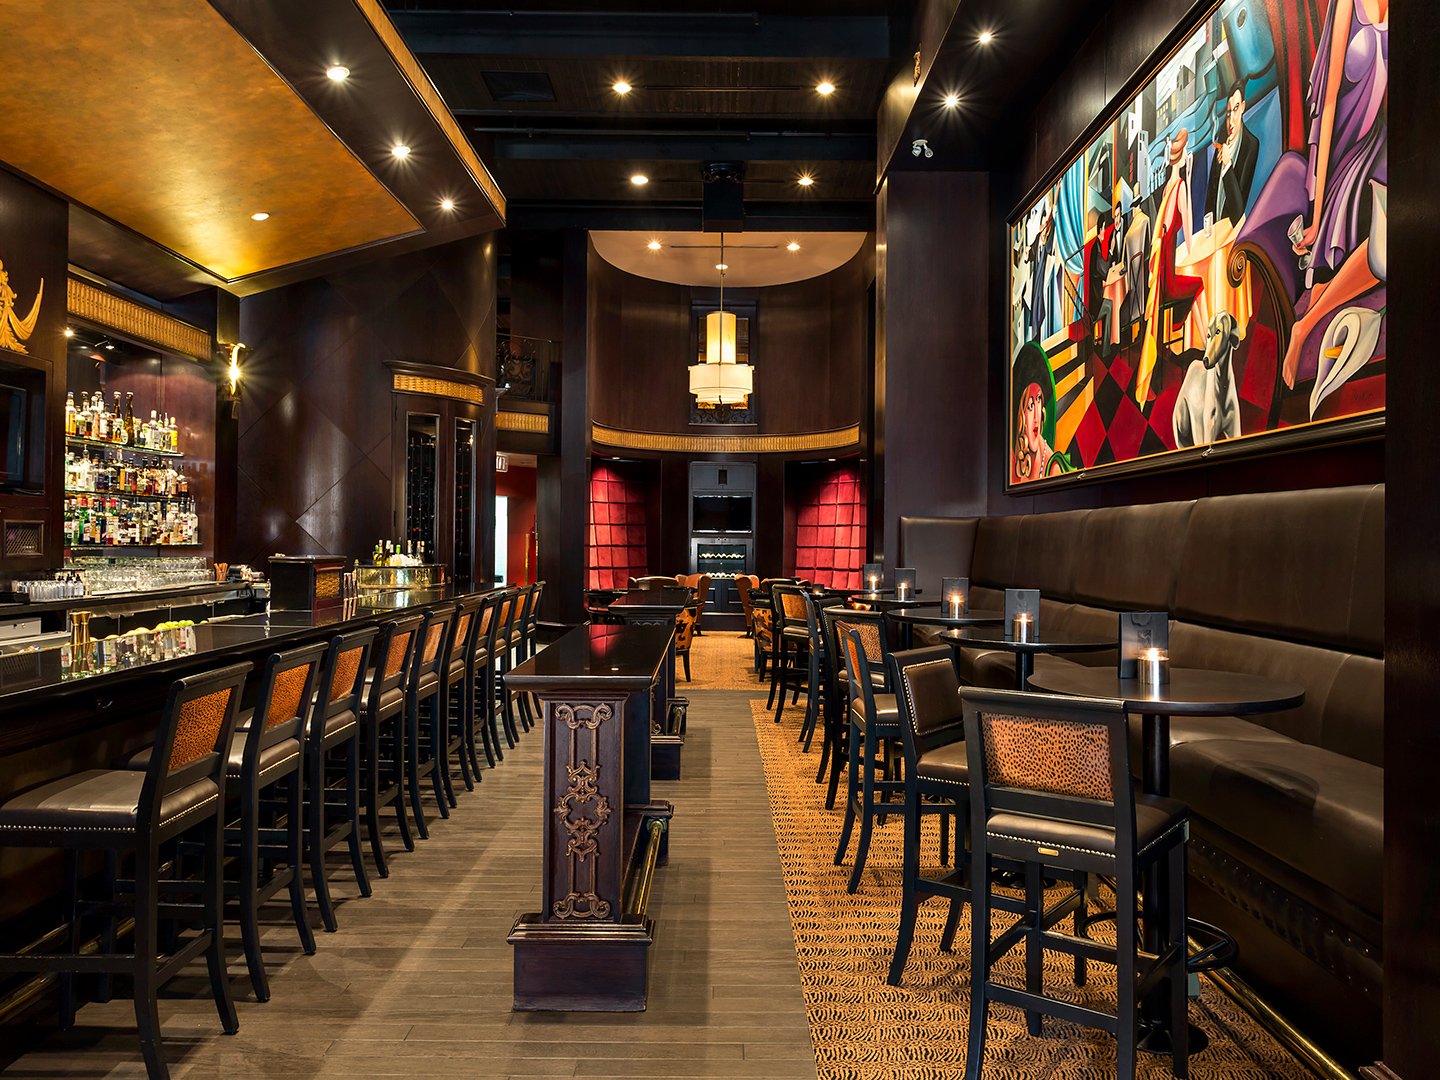 Gotham Steakhouse Bar Welcome To Gotham Steakhouse Prime Grade Beef Fresh Fish Seafood Top Shelf Cocktails And Award Winning Wines Are At The Centre Of Every Gotham Experience